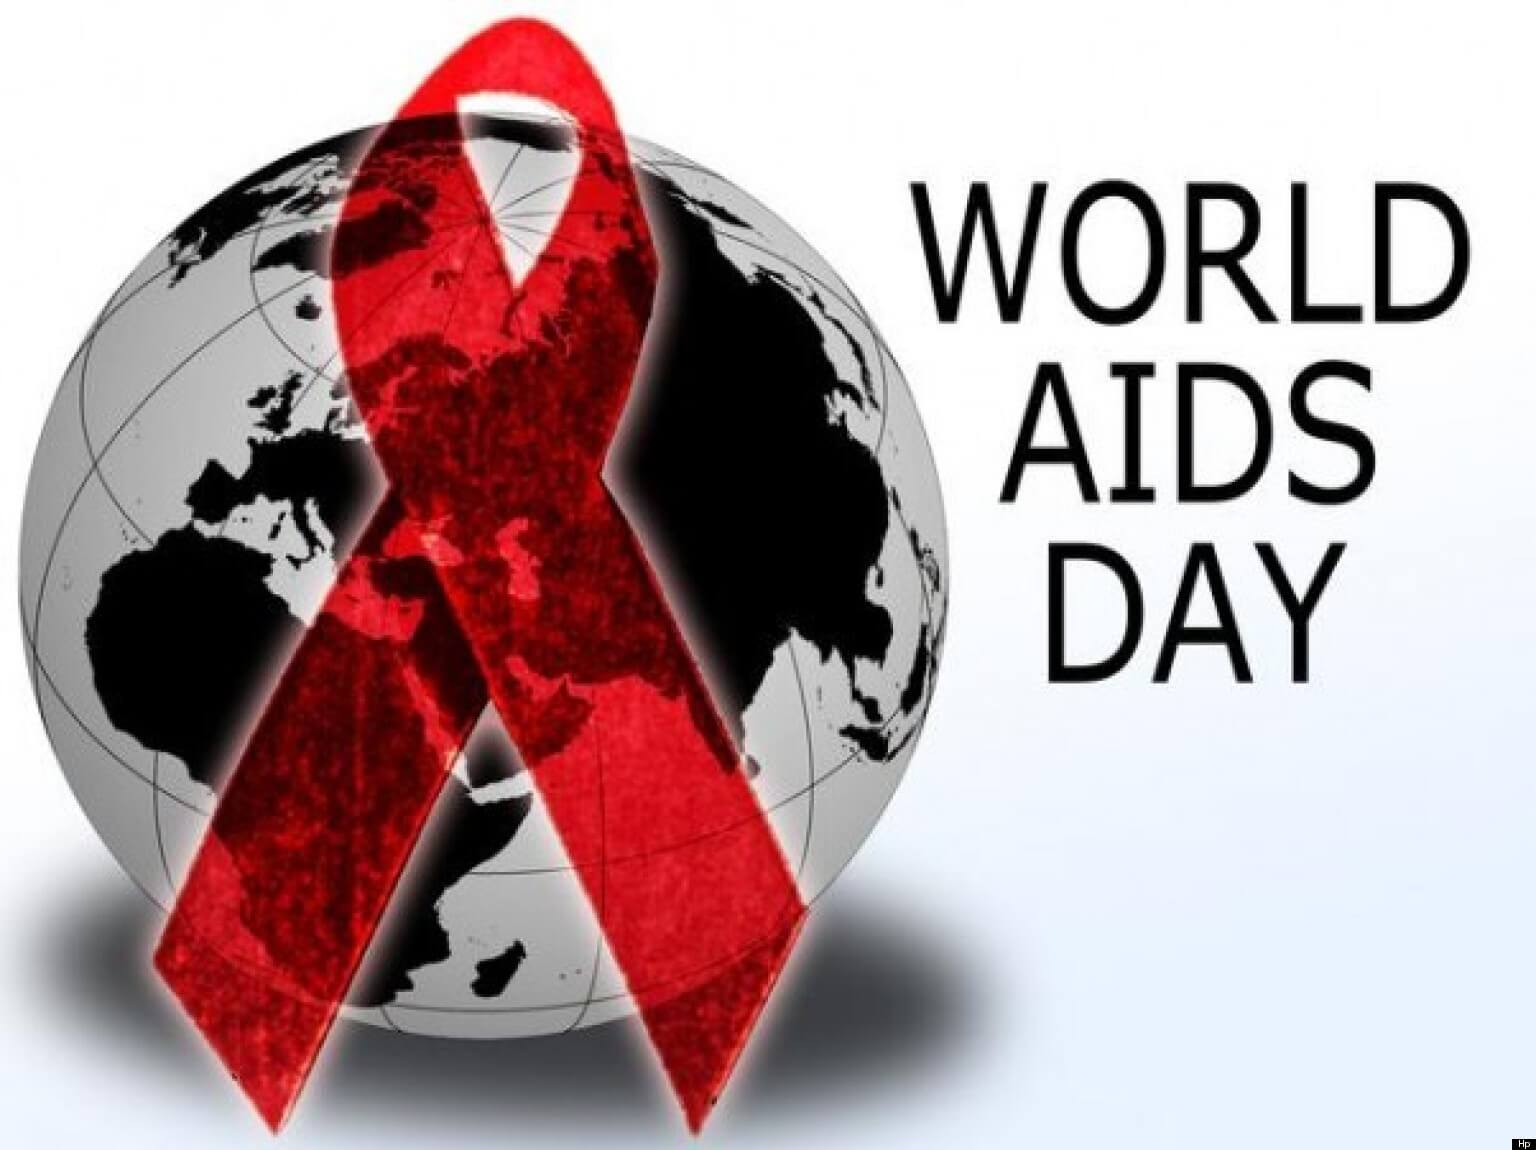 world aids day red ribbon globe december 1 hd wallpaper